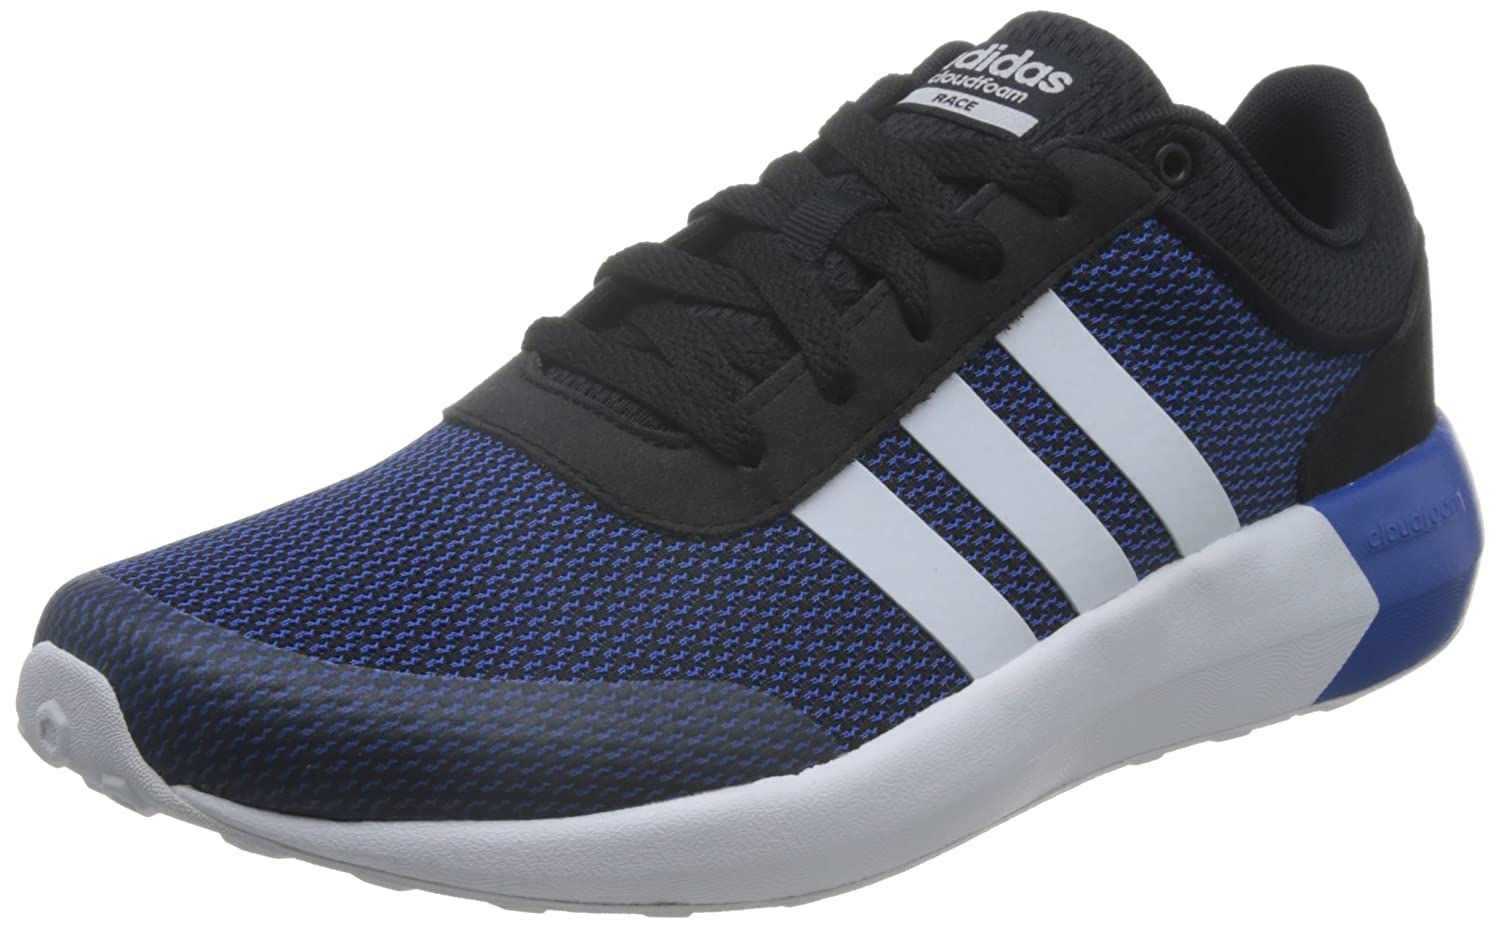 big sale c9d81 dcdb5 adidas neo Men s Cloudfoam Race Cblack, Ftwwht and Blue Sneakers - 12  UK India (47.3 EU)  Buy Online at Low Prices in India - Amazon.in